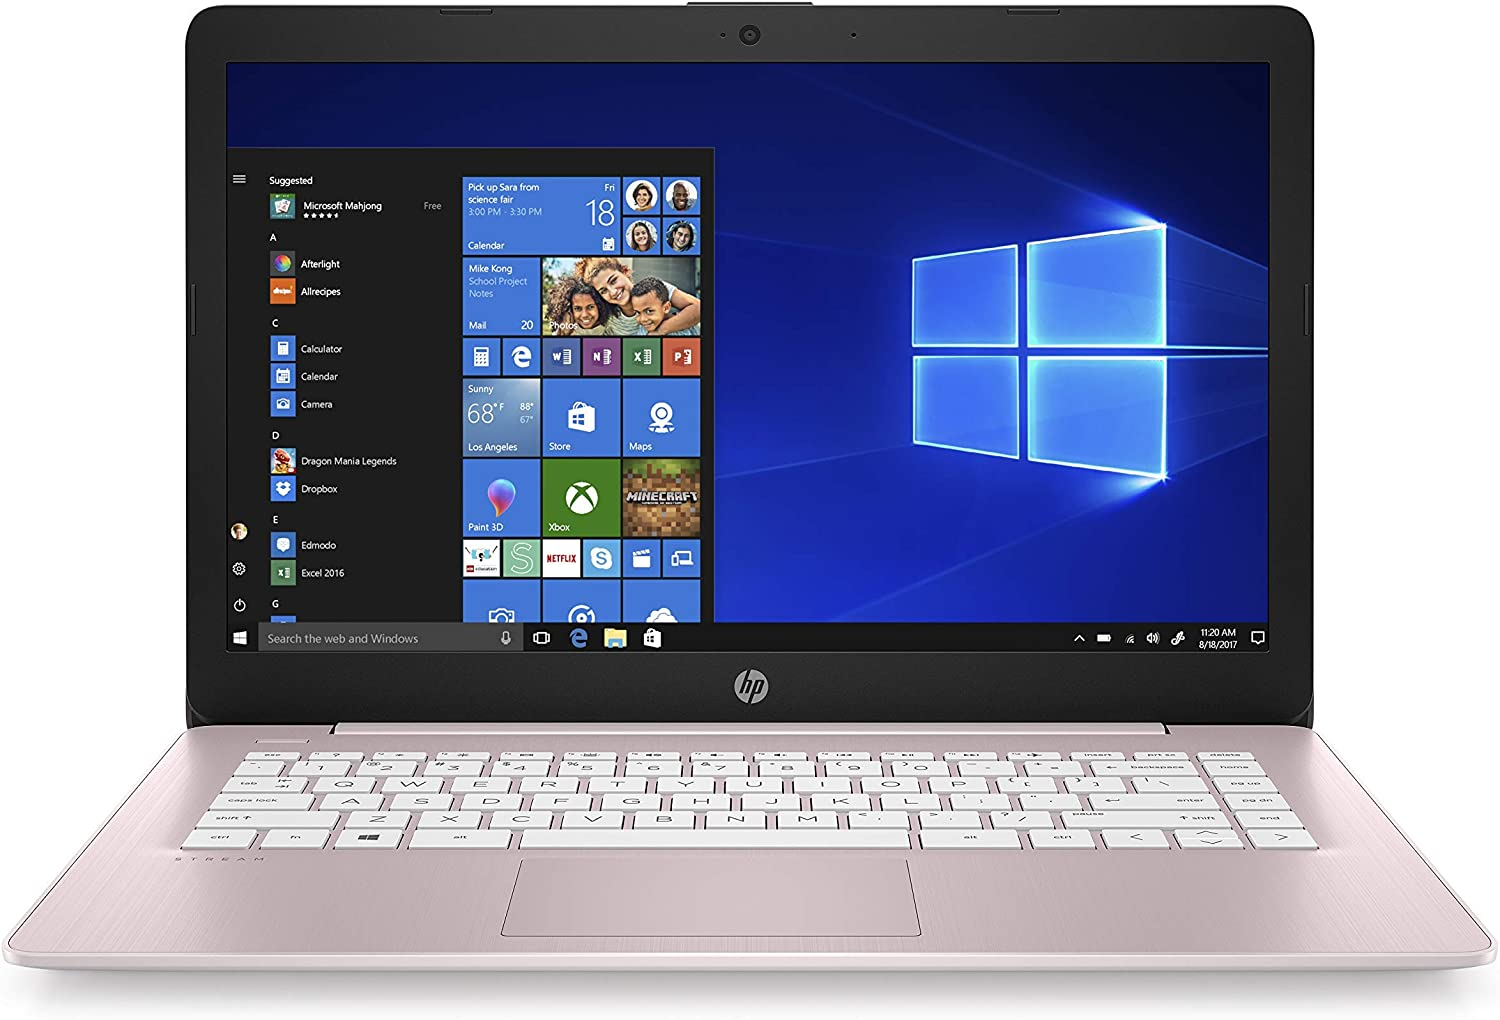 HP Stream 14-Inch Laptop, Intel Celeron N4000, 4 GB RAM, 64 GB eMMC, Windows 10 Home in S Mode With Office 365 Personal For 1 Year (14-cb188nr, Rose Pink) (Renewed)